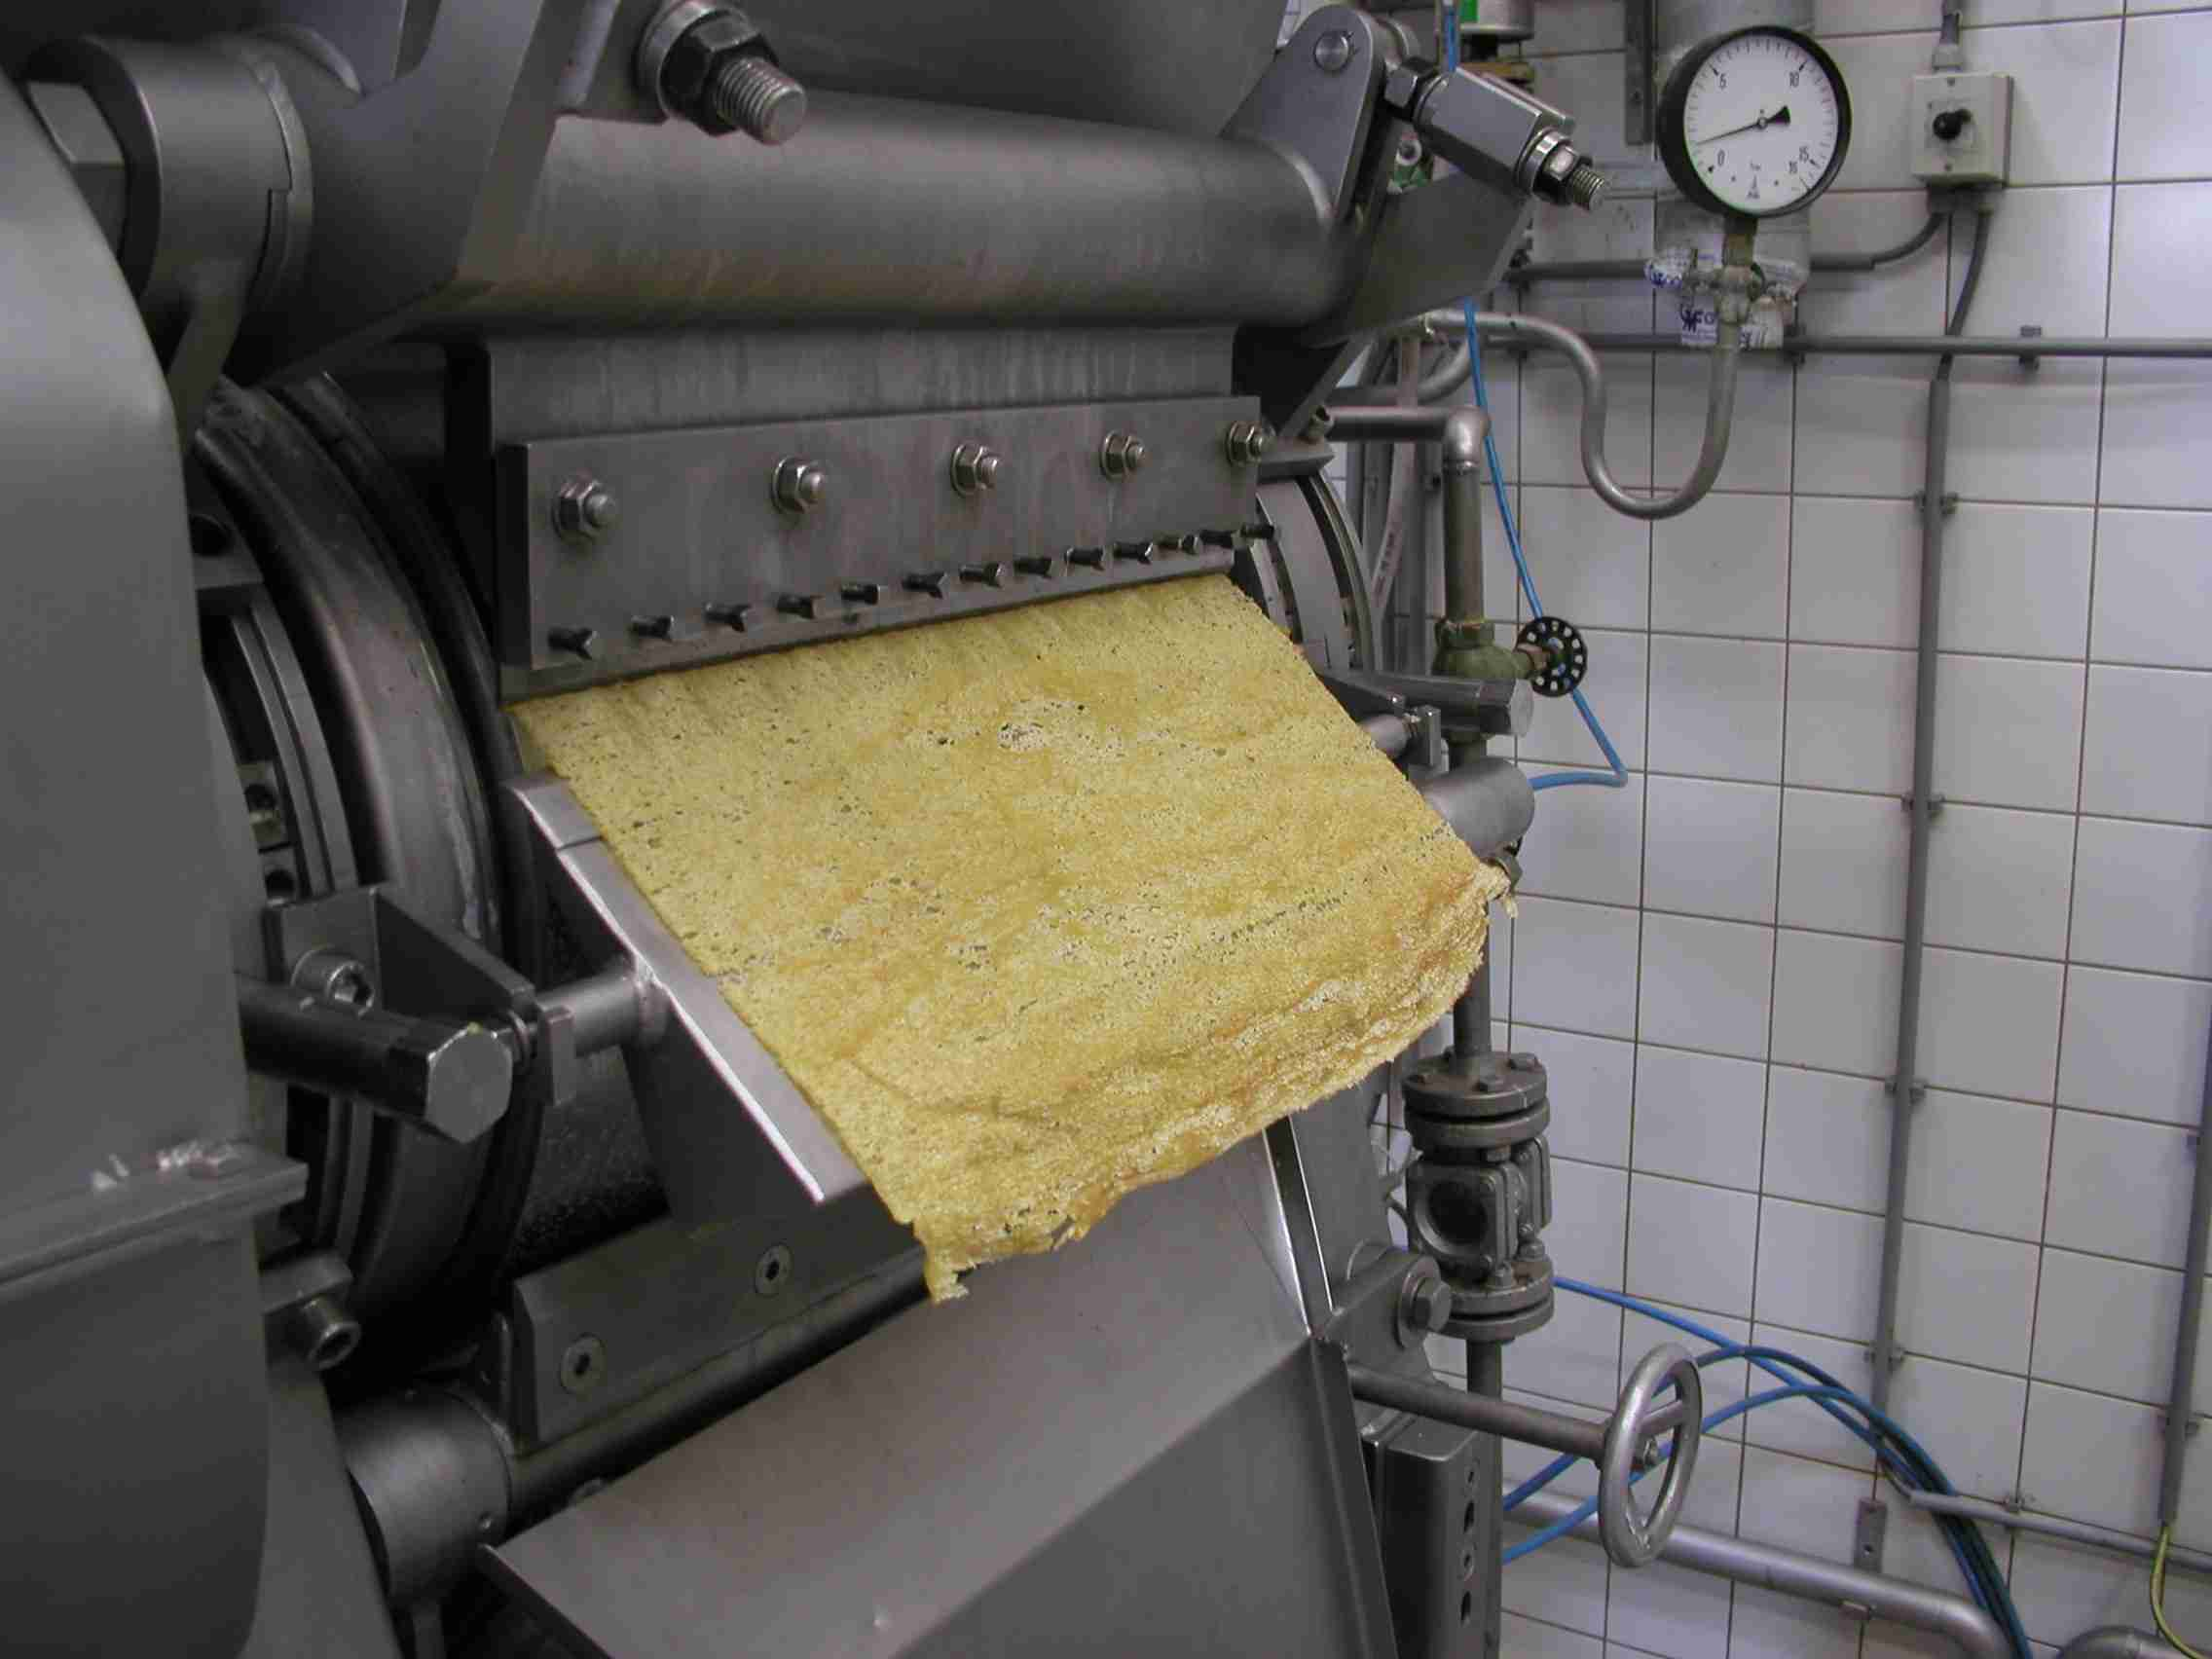 The drum dryer is capable of drying viscous, pasty, and sticky products. This is mango paste dried on the drum.